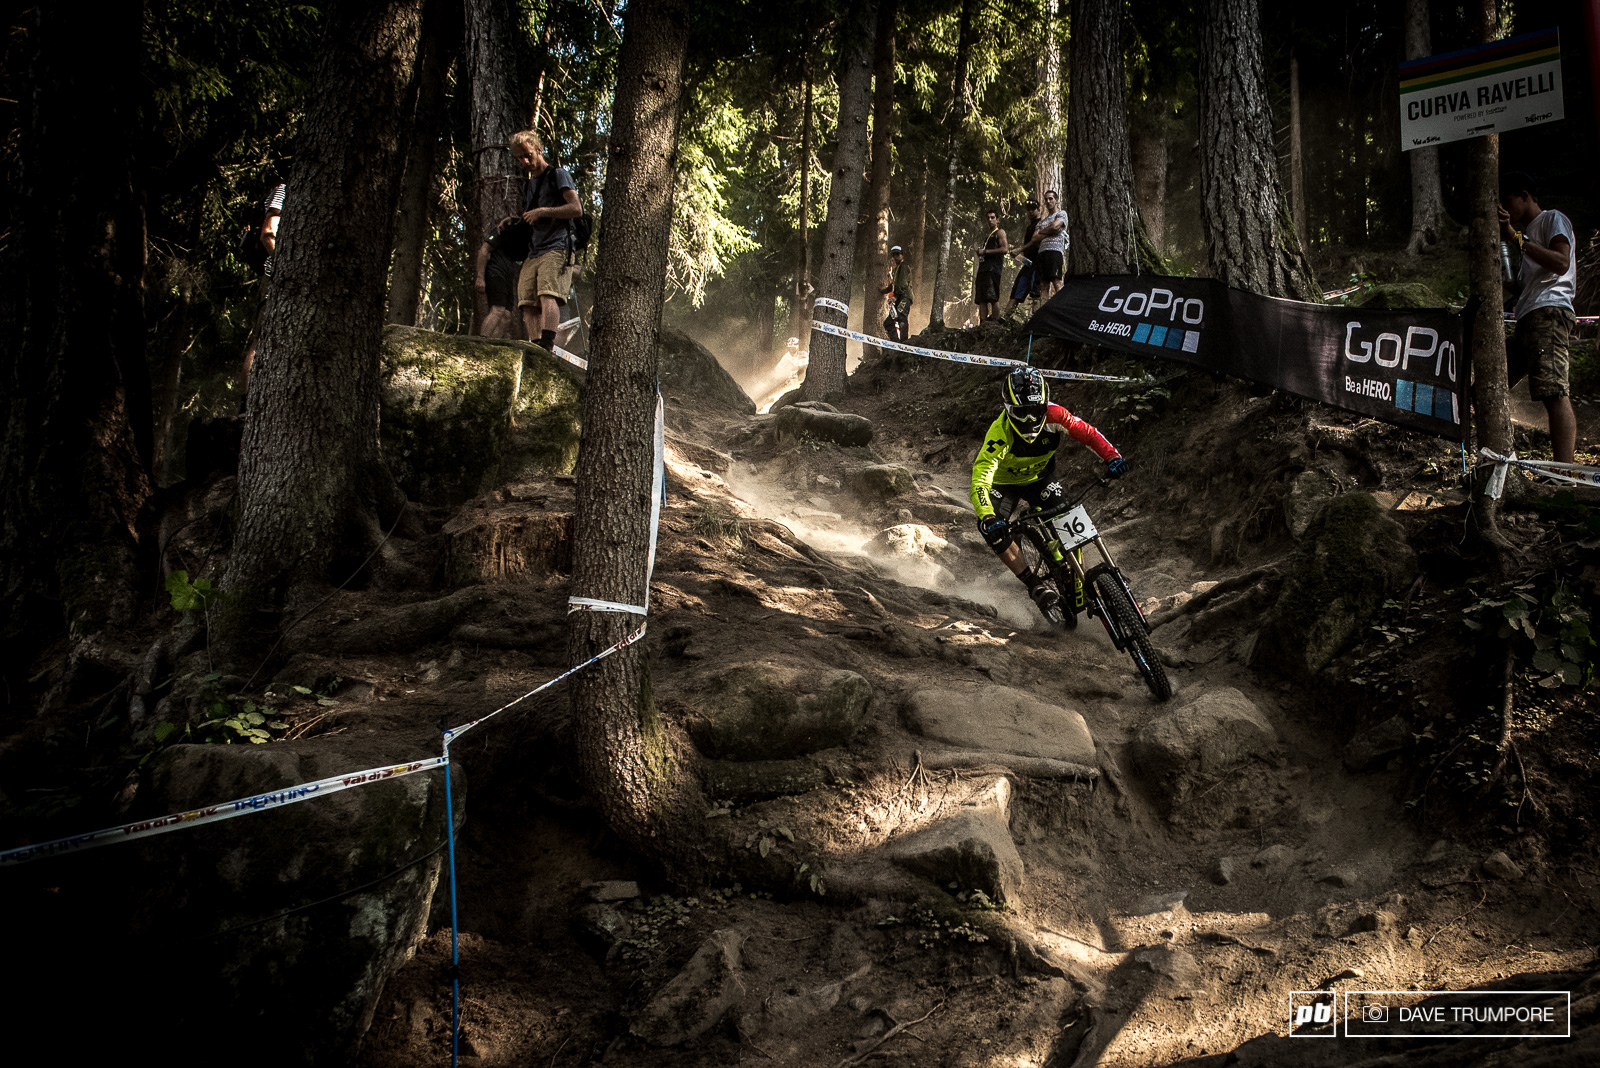 Greg Williamson drops into the steepest part of the track in Val di Sole.